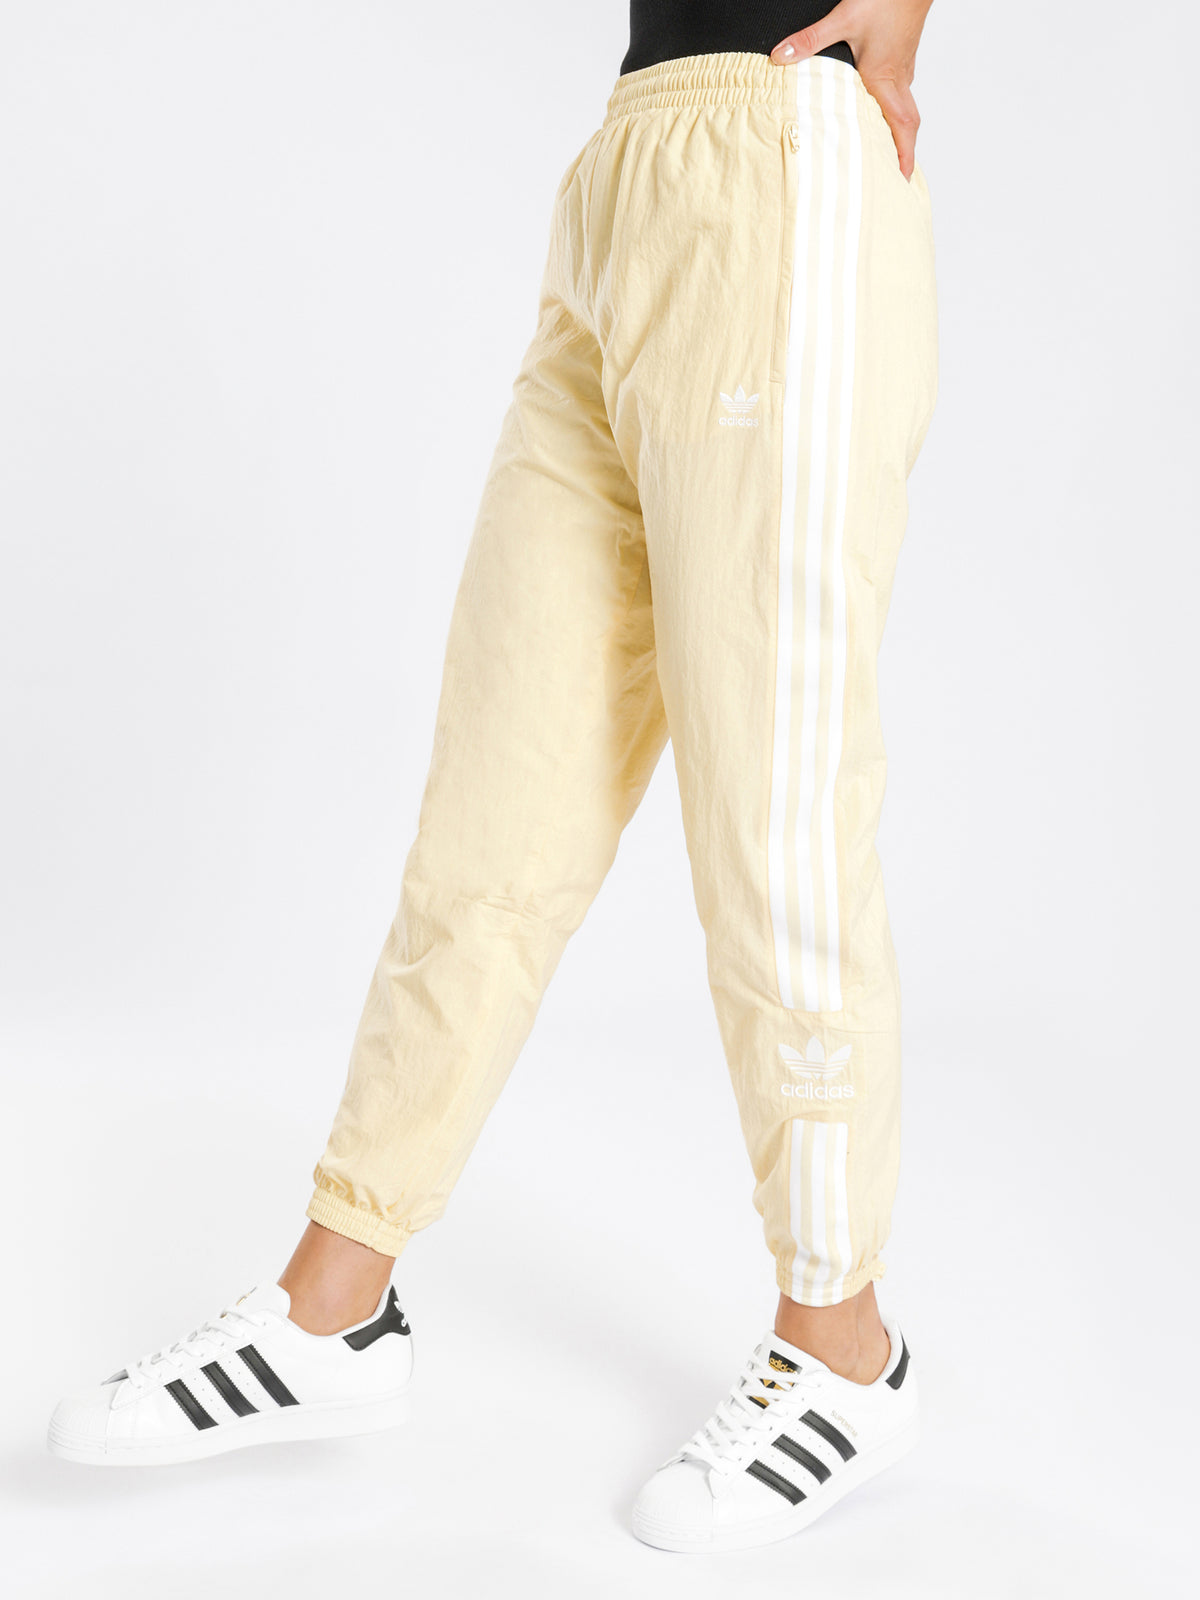 Lock Up Track Pants in Easy Yellow